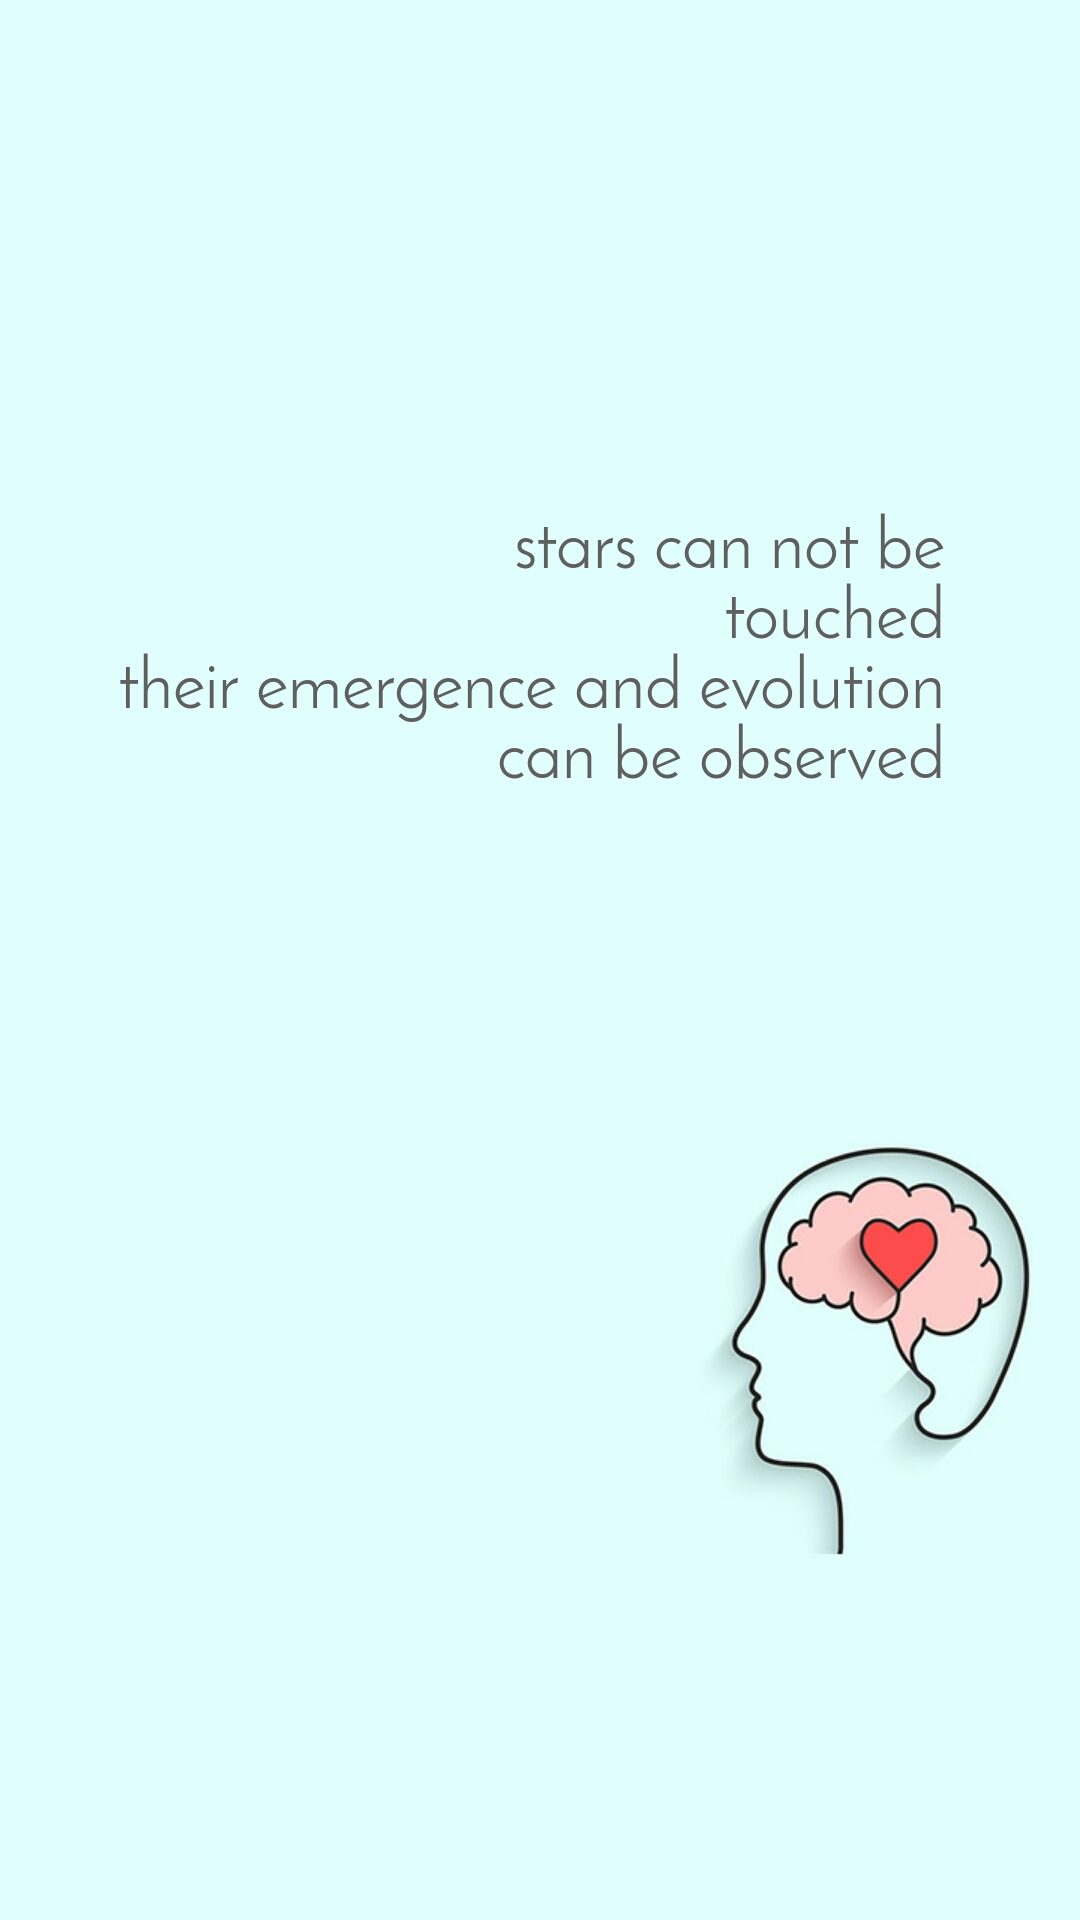 stars can not be touched their emergence and evolution can be observed